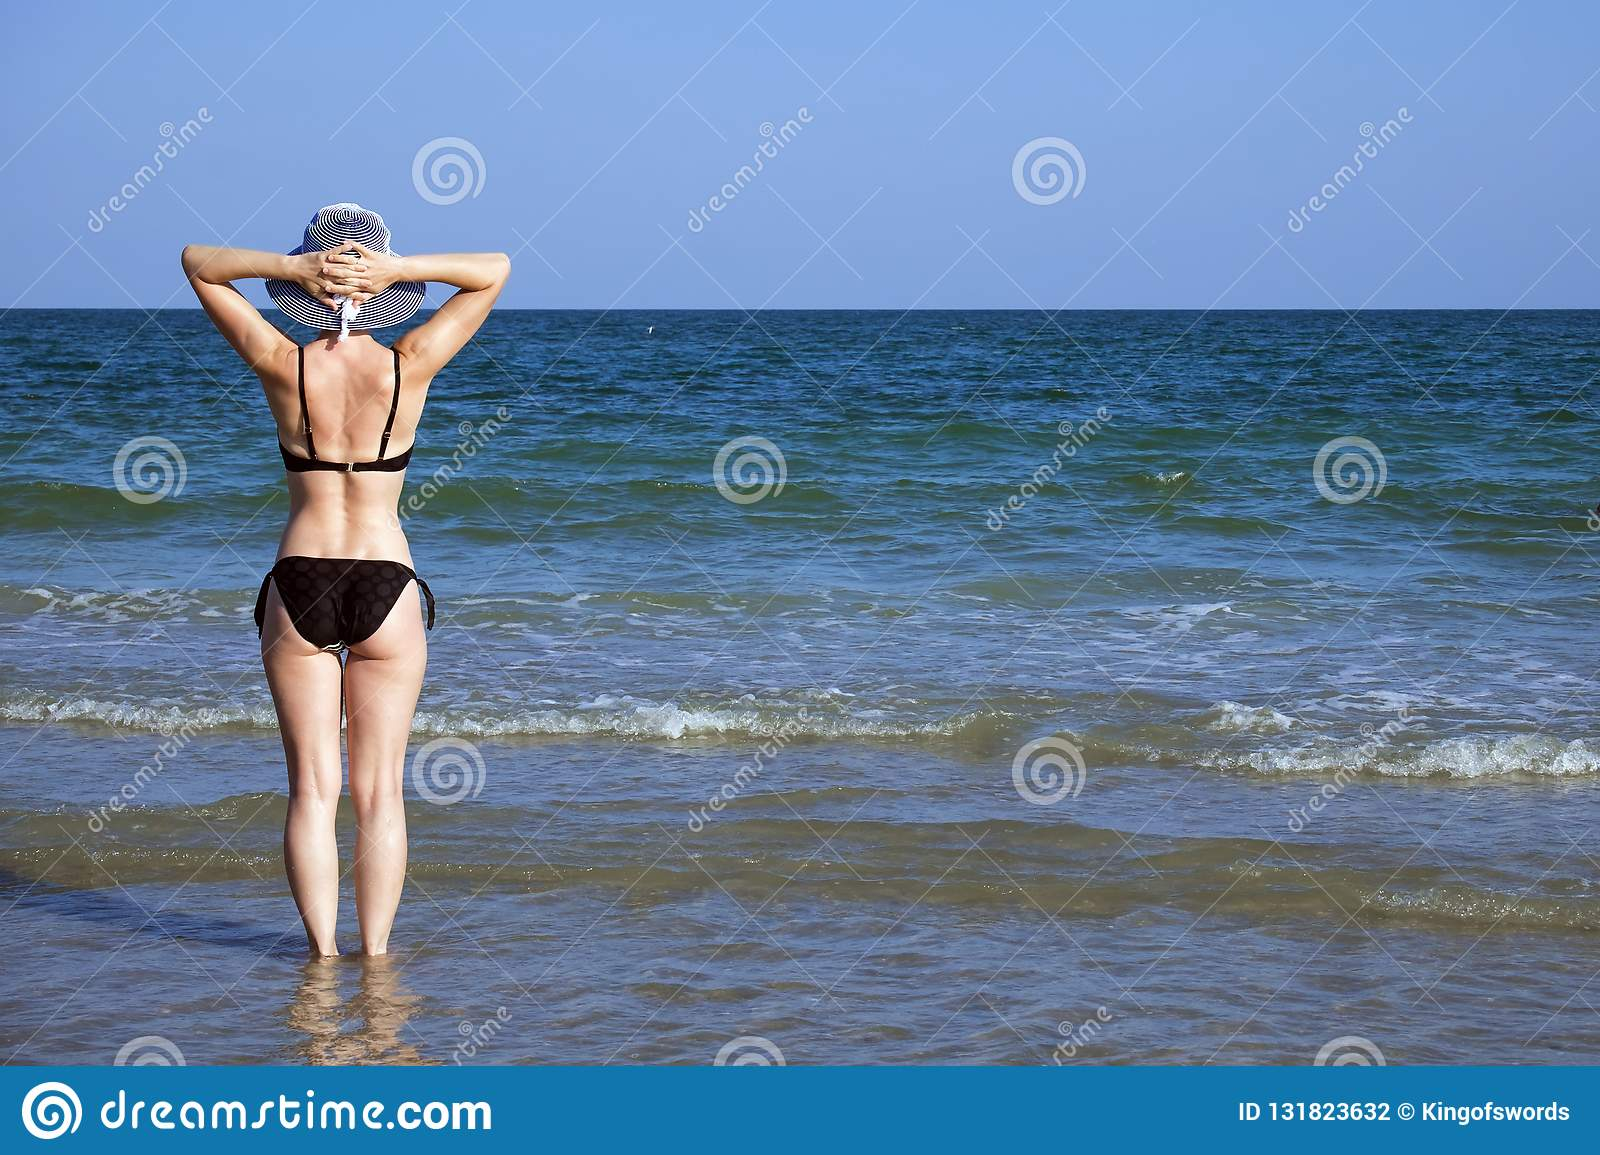 83ecd0c35d661 Young girl in a bathing suit and a striped hat is standing in the sea  holding